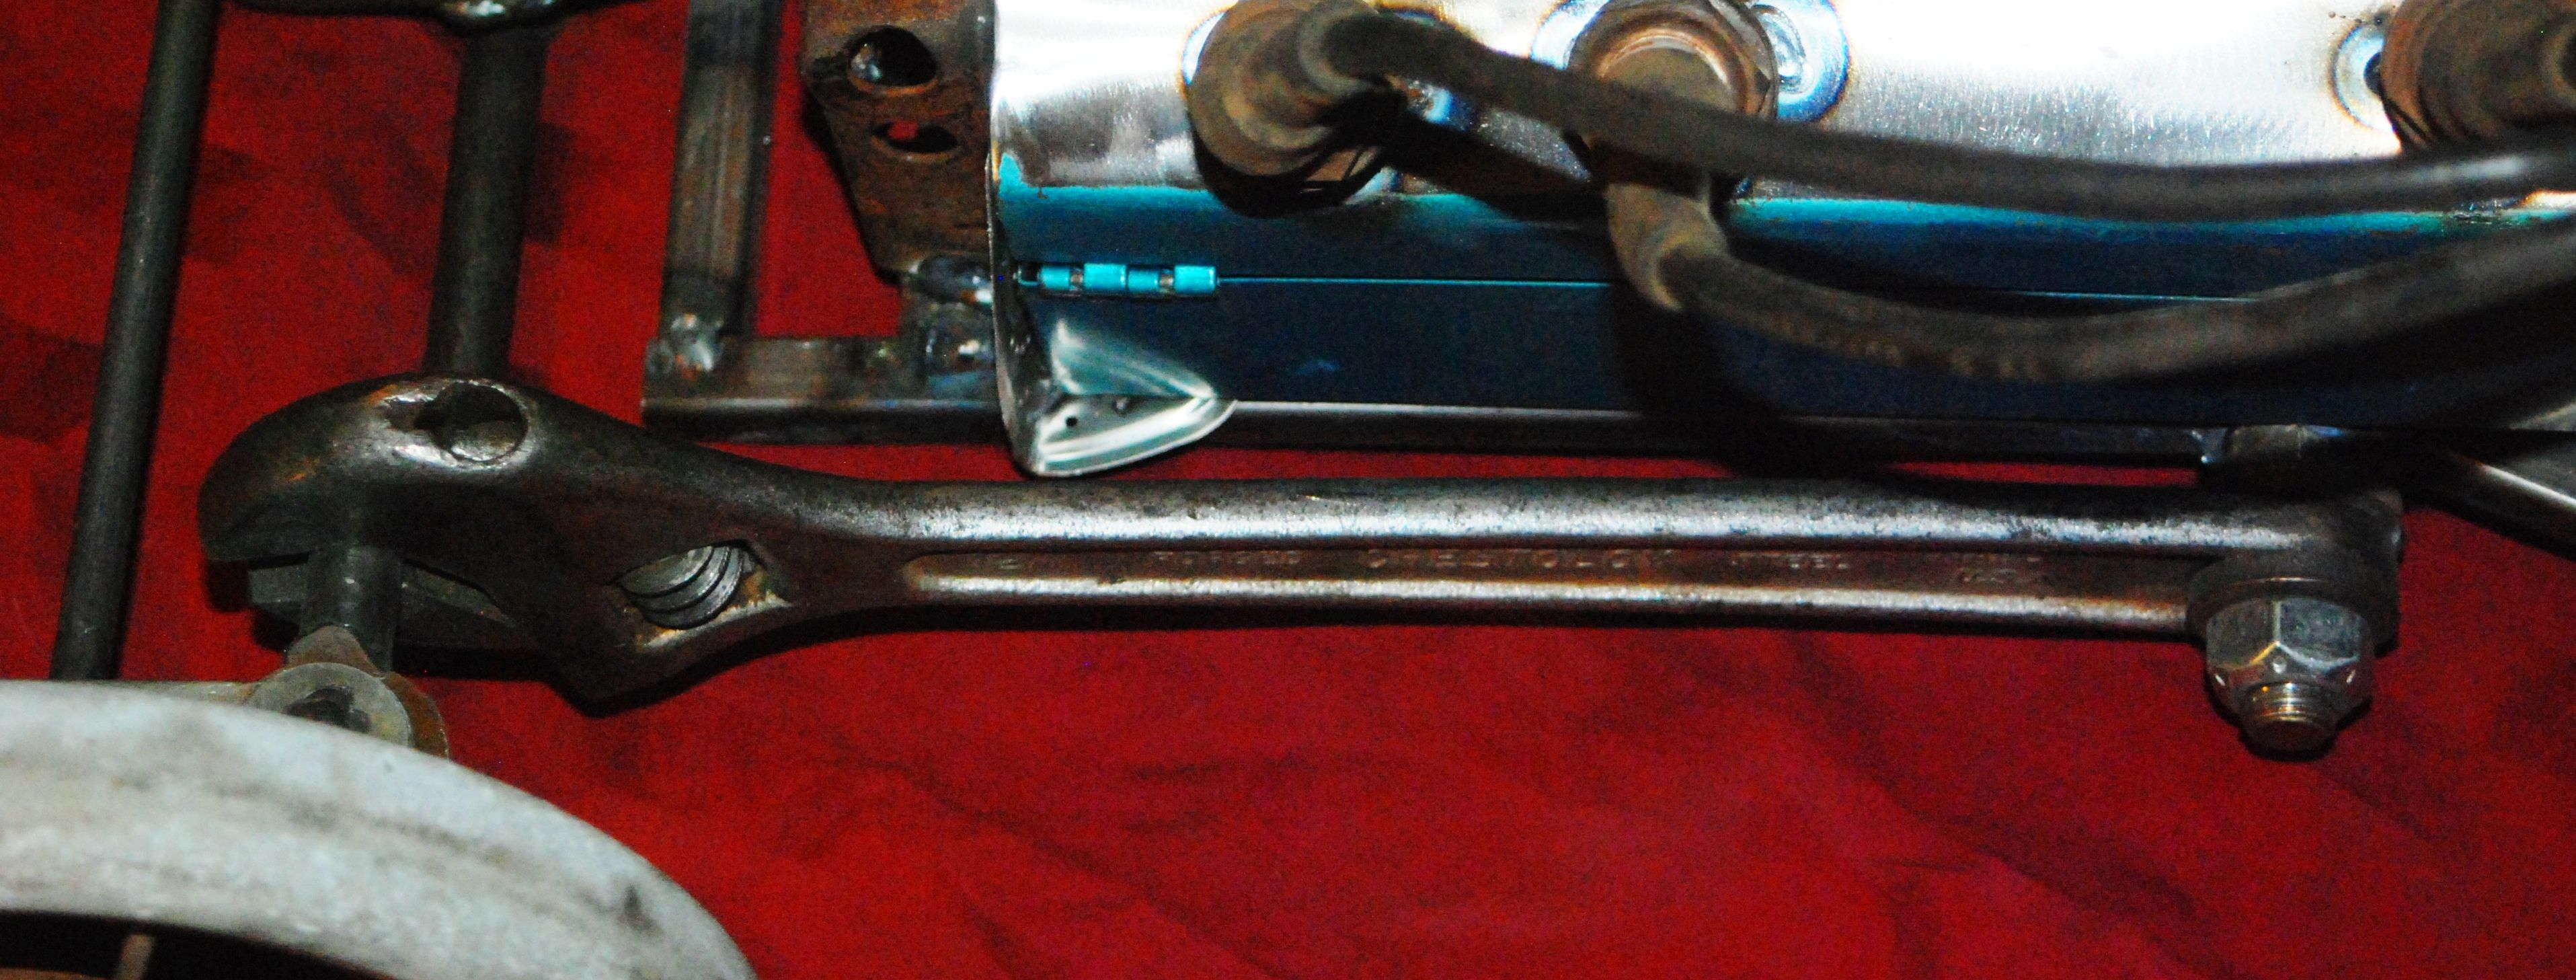 rat rod wagon , cresent wrenches used as radius arms Rat